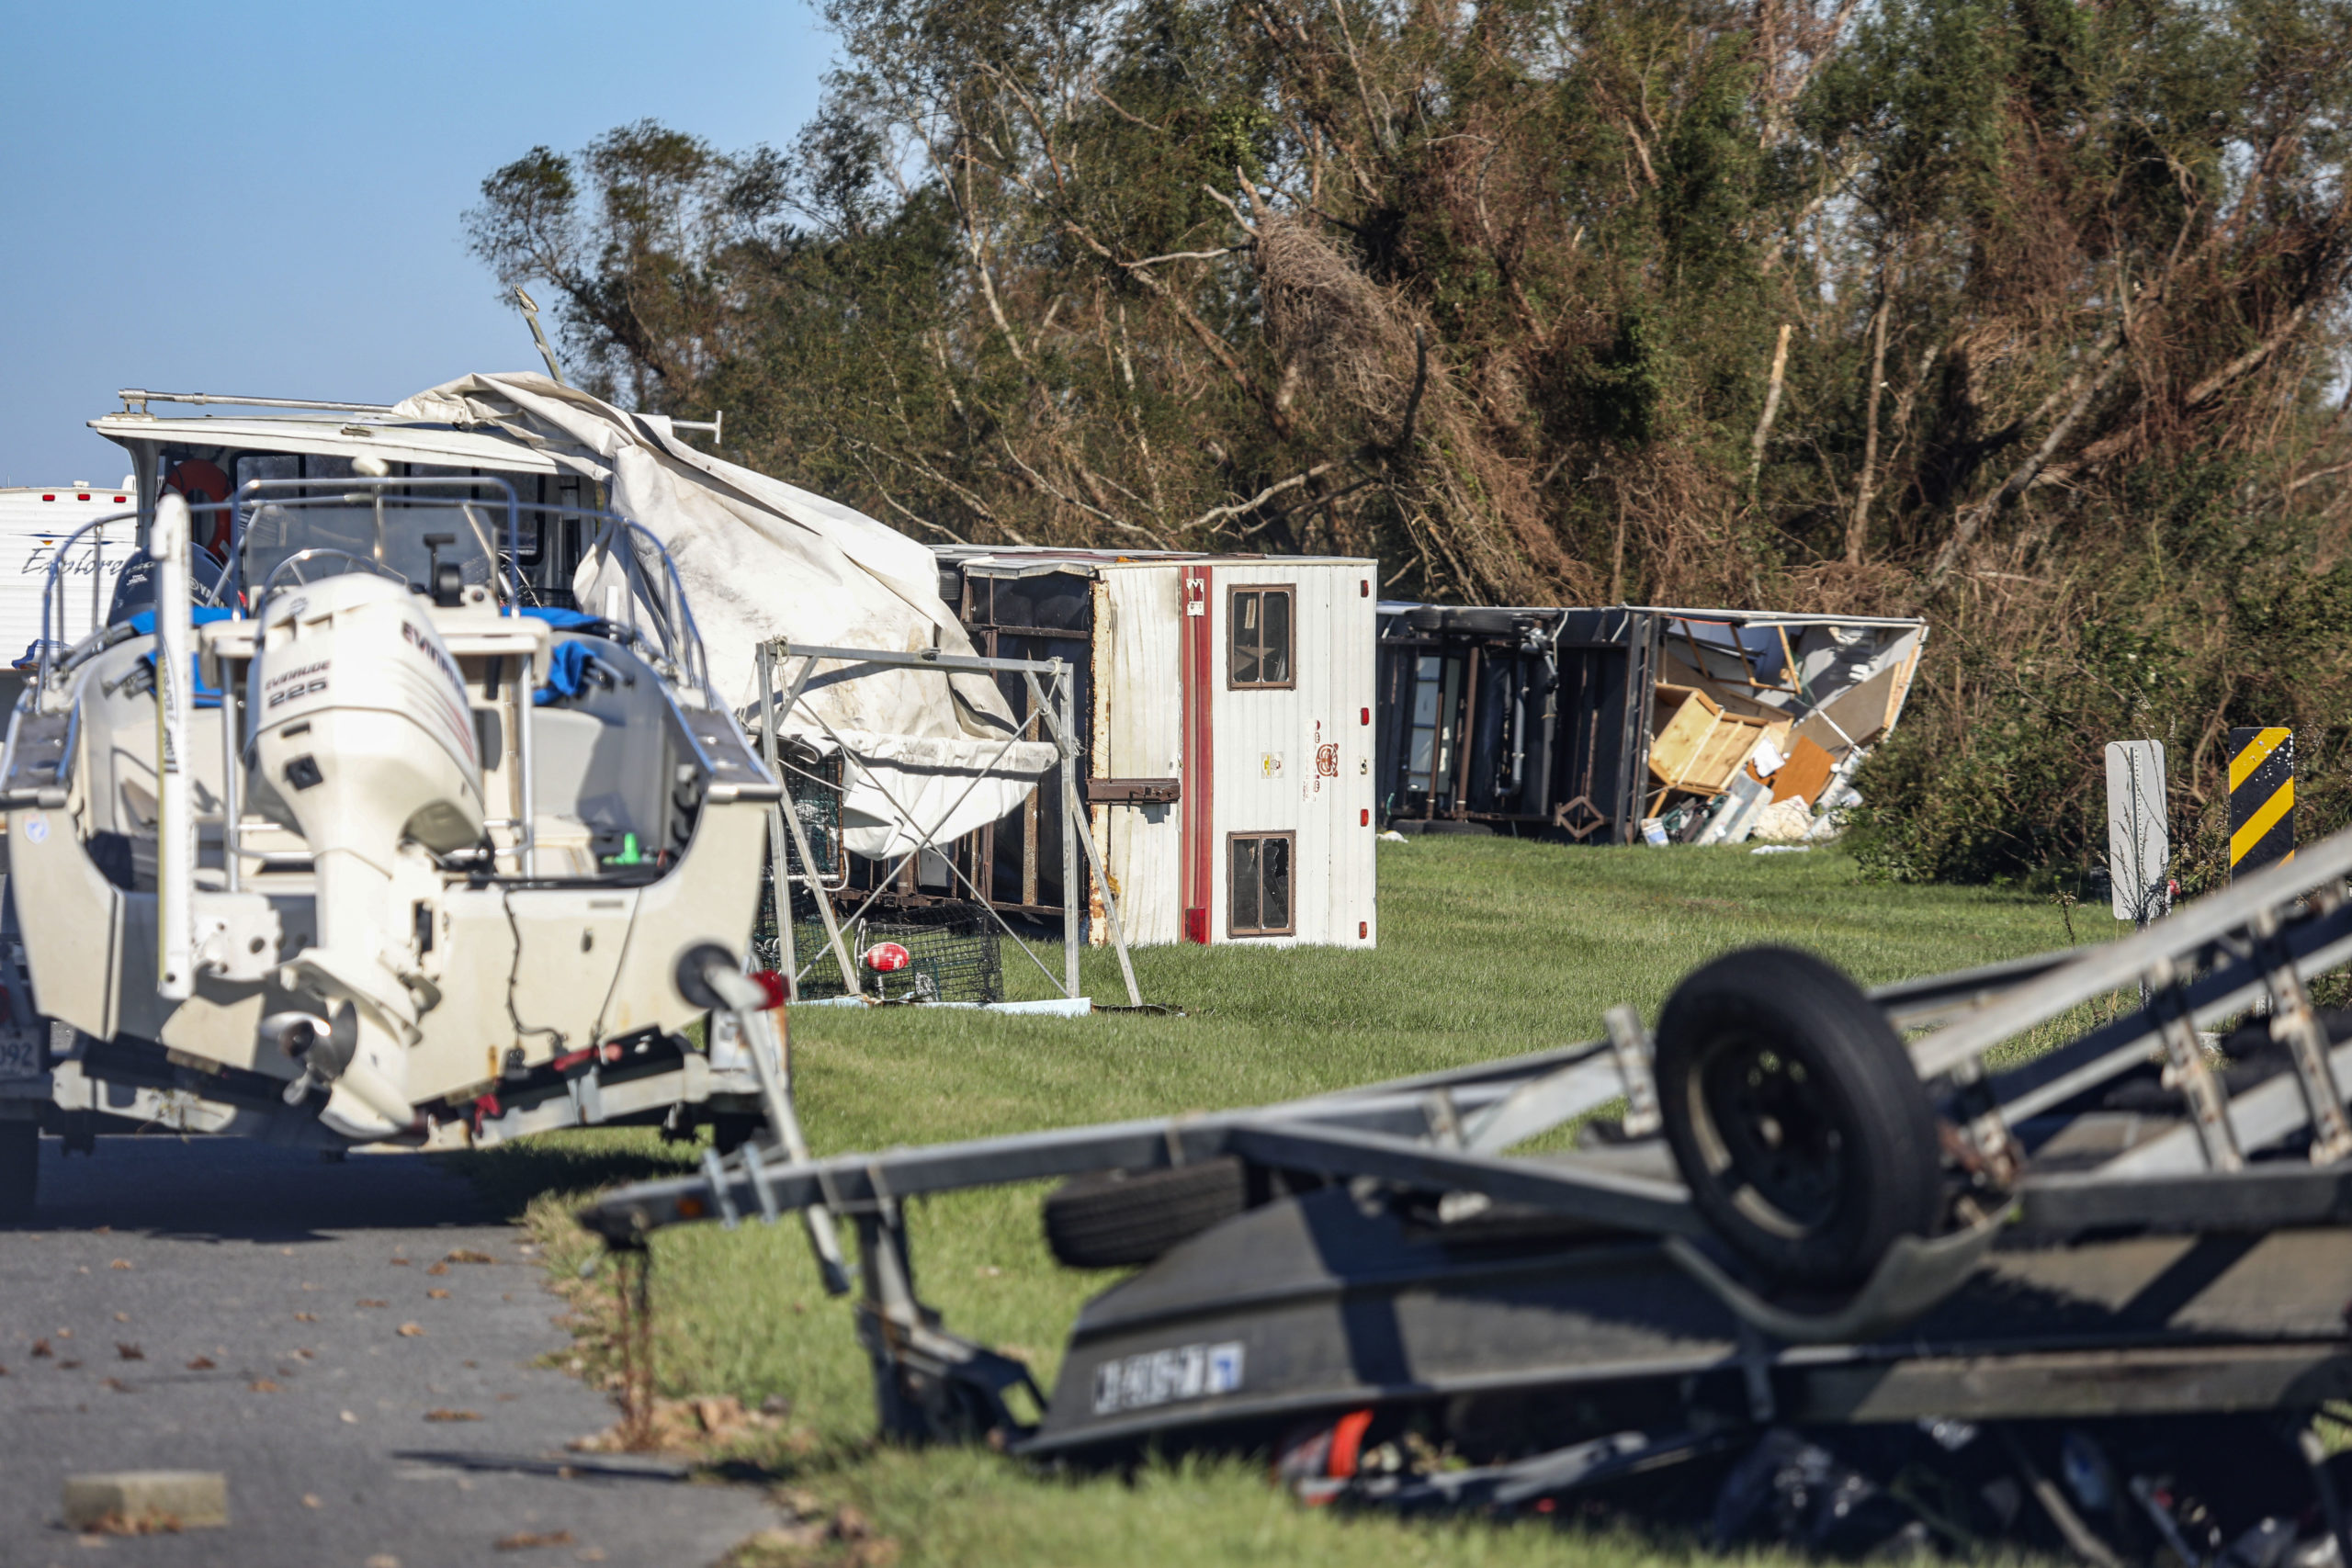 Overturned trailers sit along LA-46 after Hurricane Zeta on October 29, 2020 in Reggio, Louisiana. A record seven hurricanes have hit the gulf coast in 2020 bringing prolonged destruction to the area. (Photo by Sandy Huffaker/Getty Images)